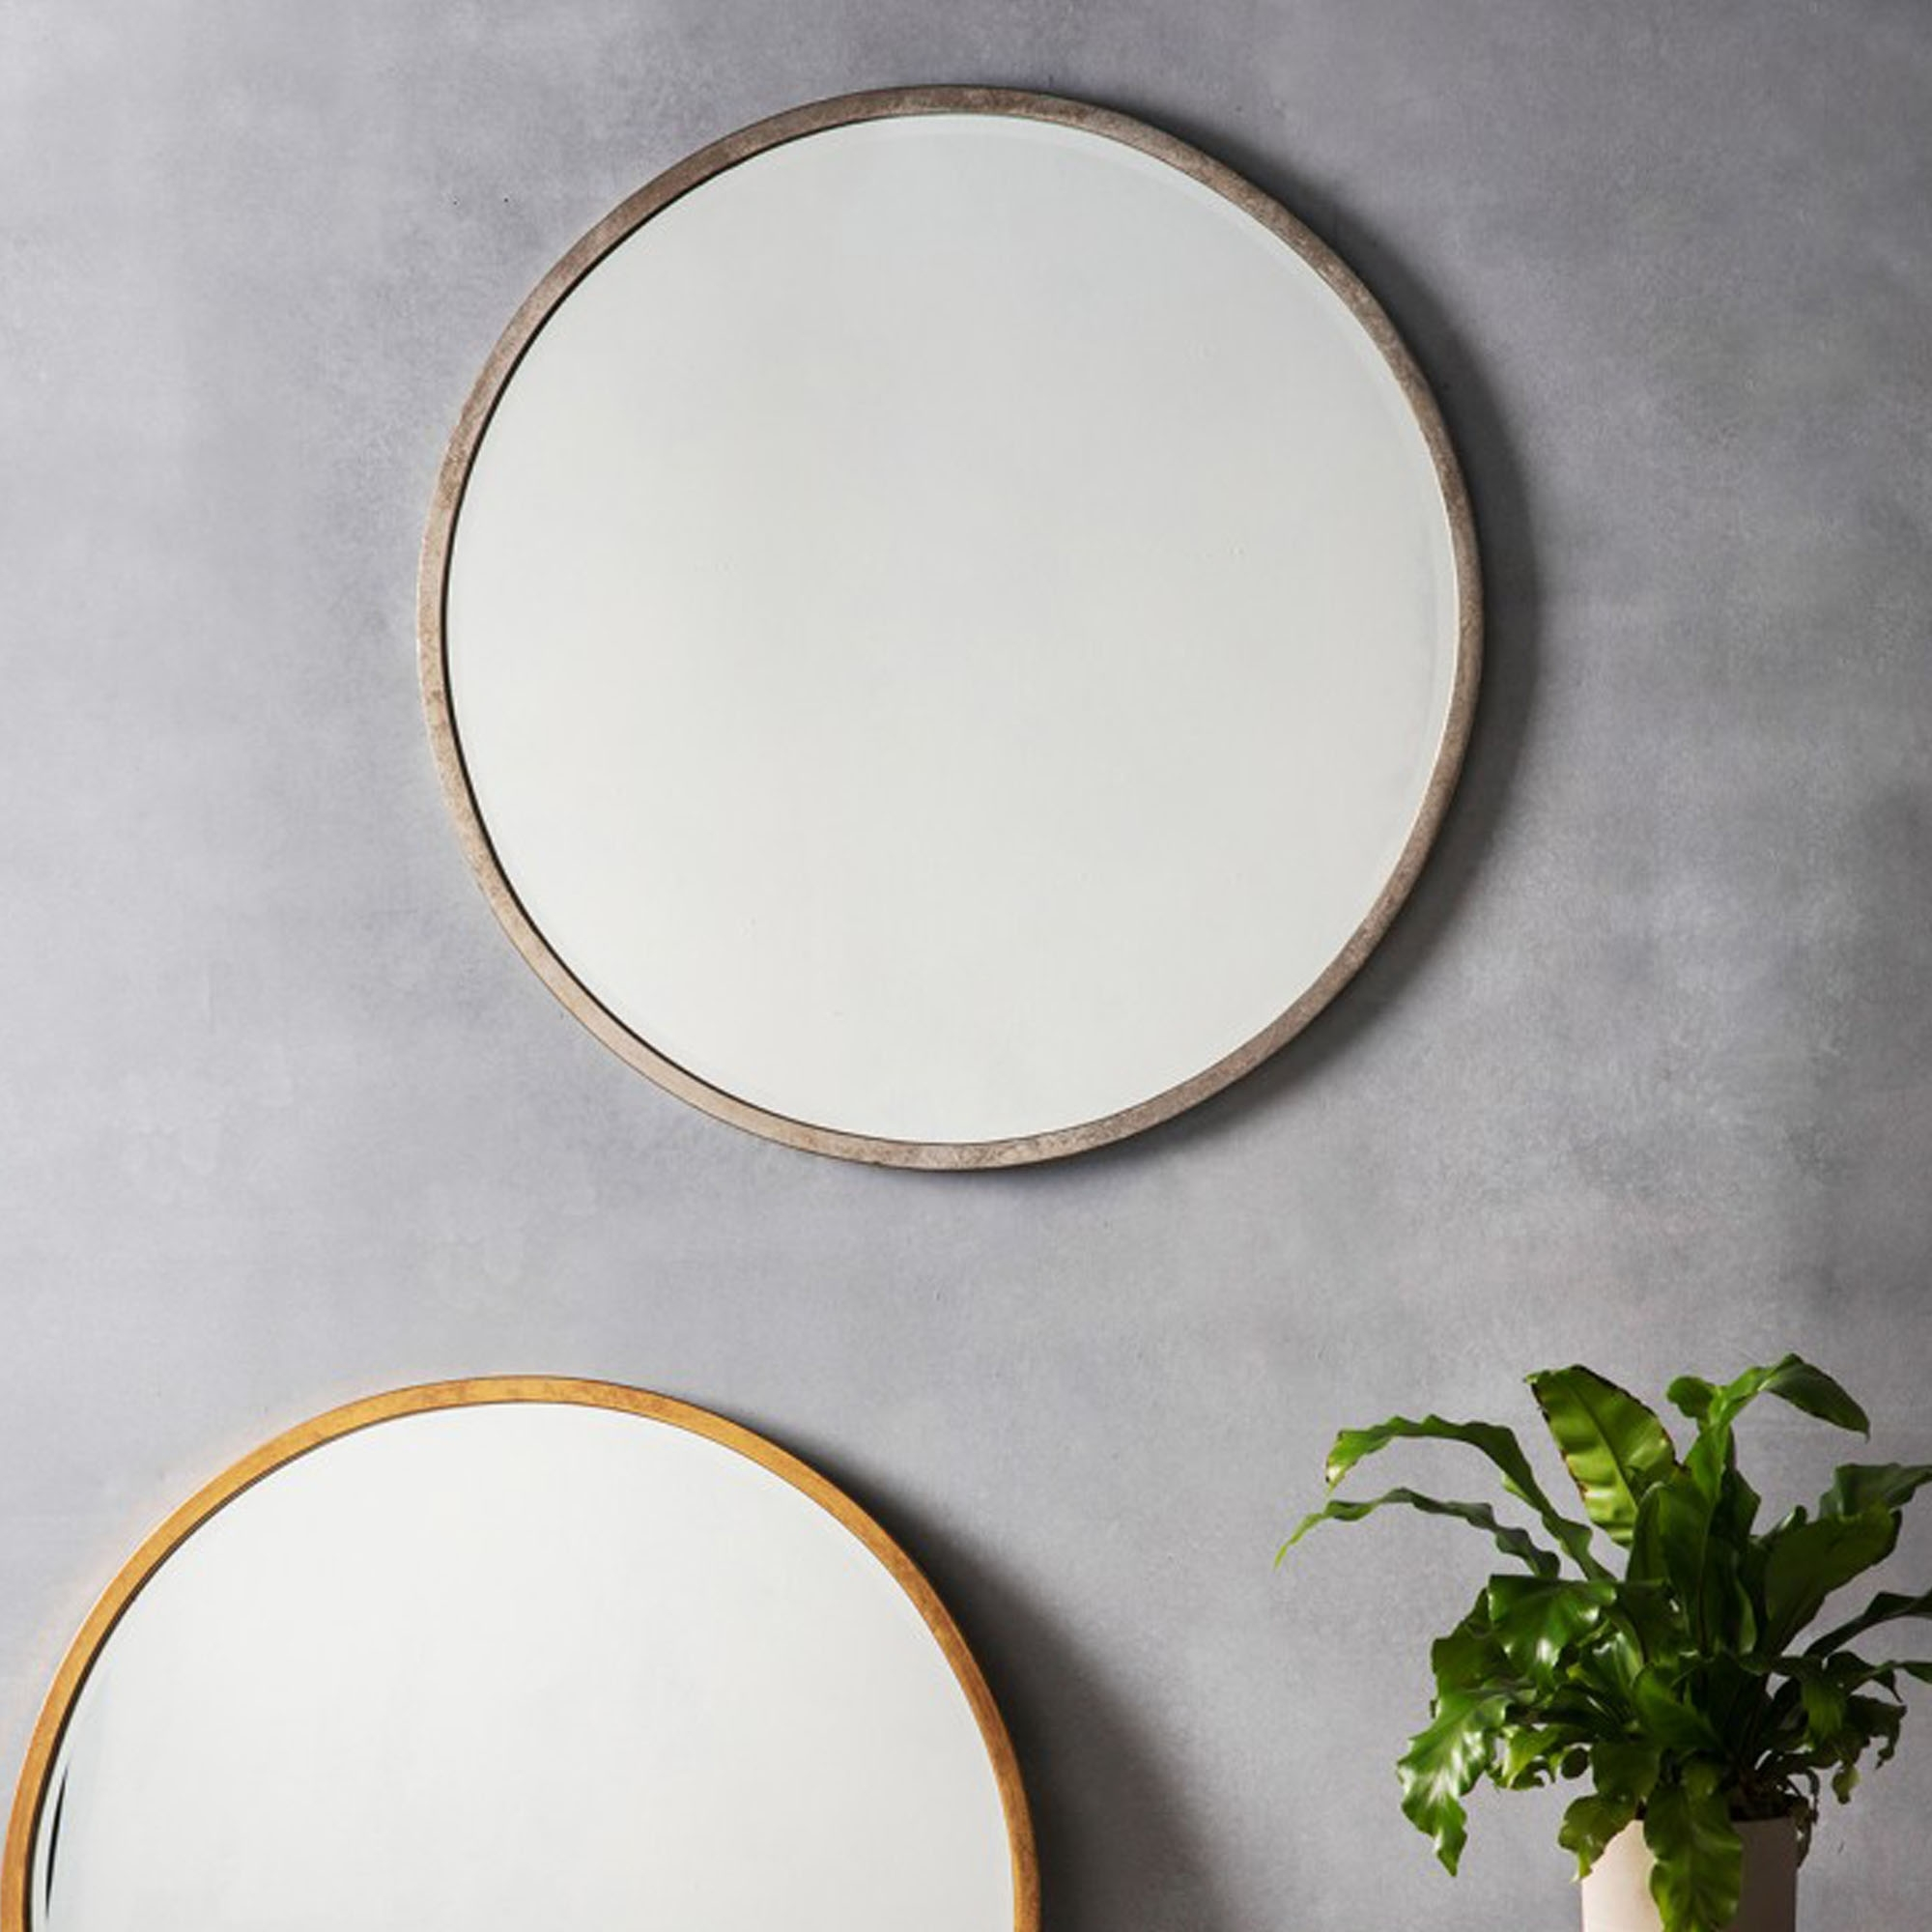 Higgins antique silver round wall mirror wall mirrors for Round silver wall mirror